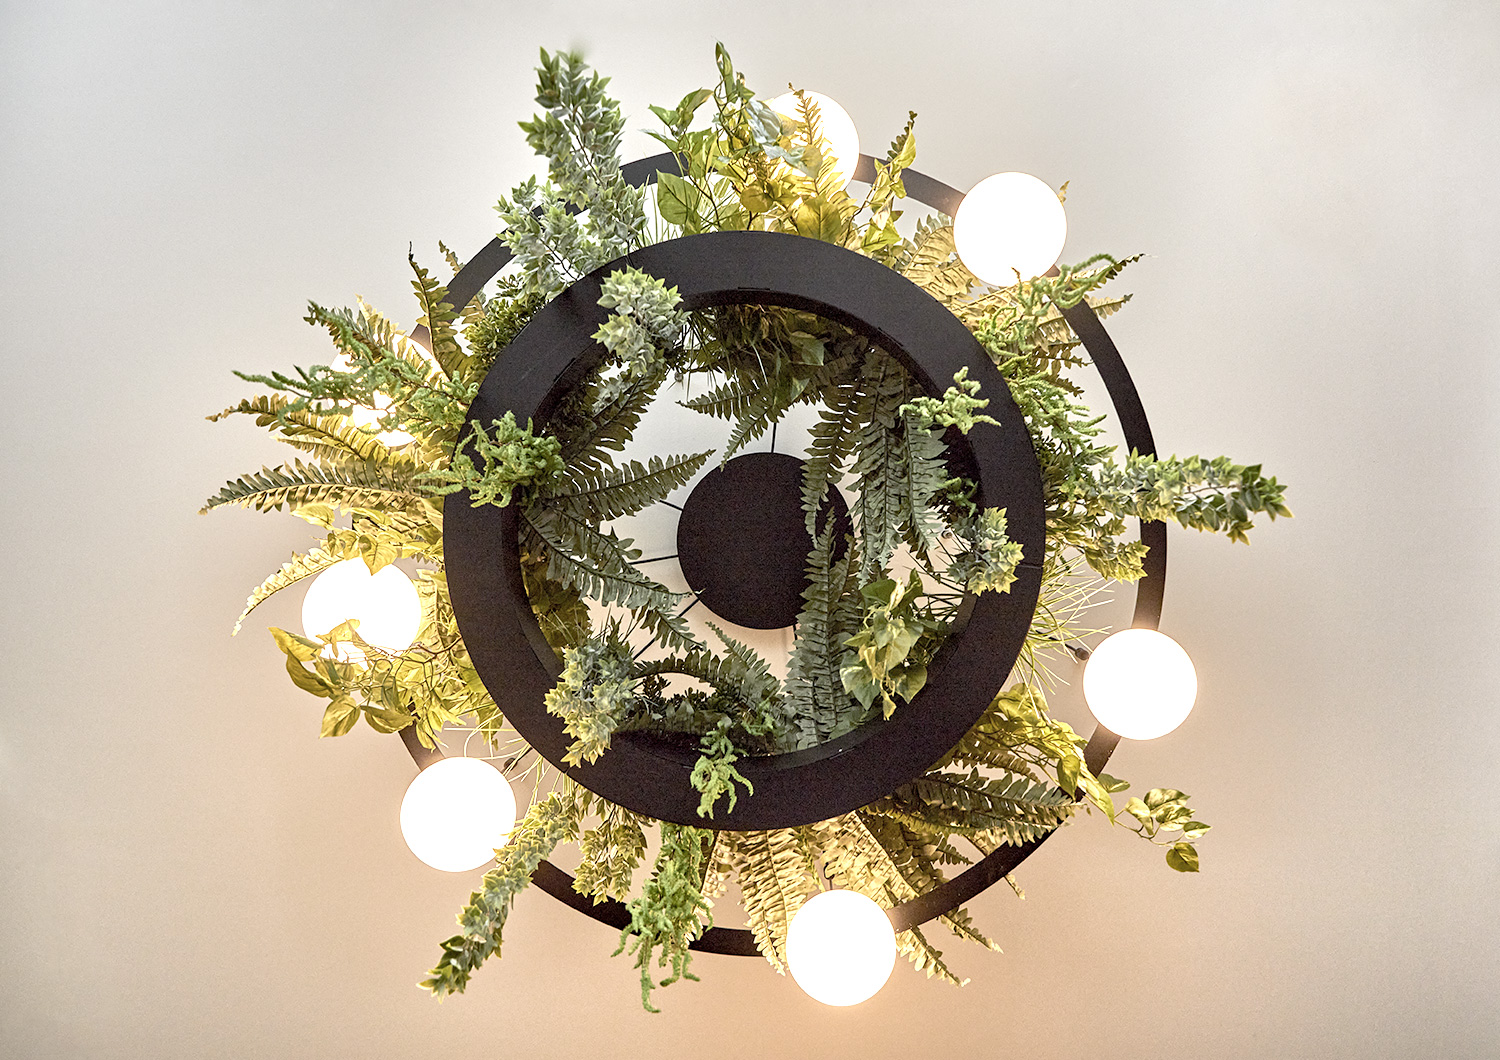 Integrate Lighting And Plants Gallery 07